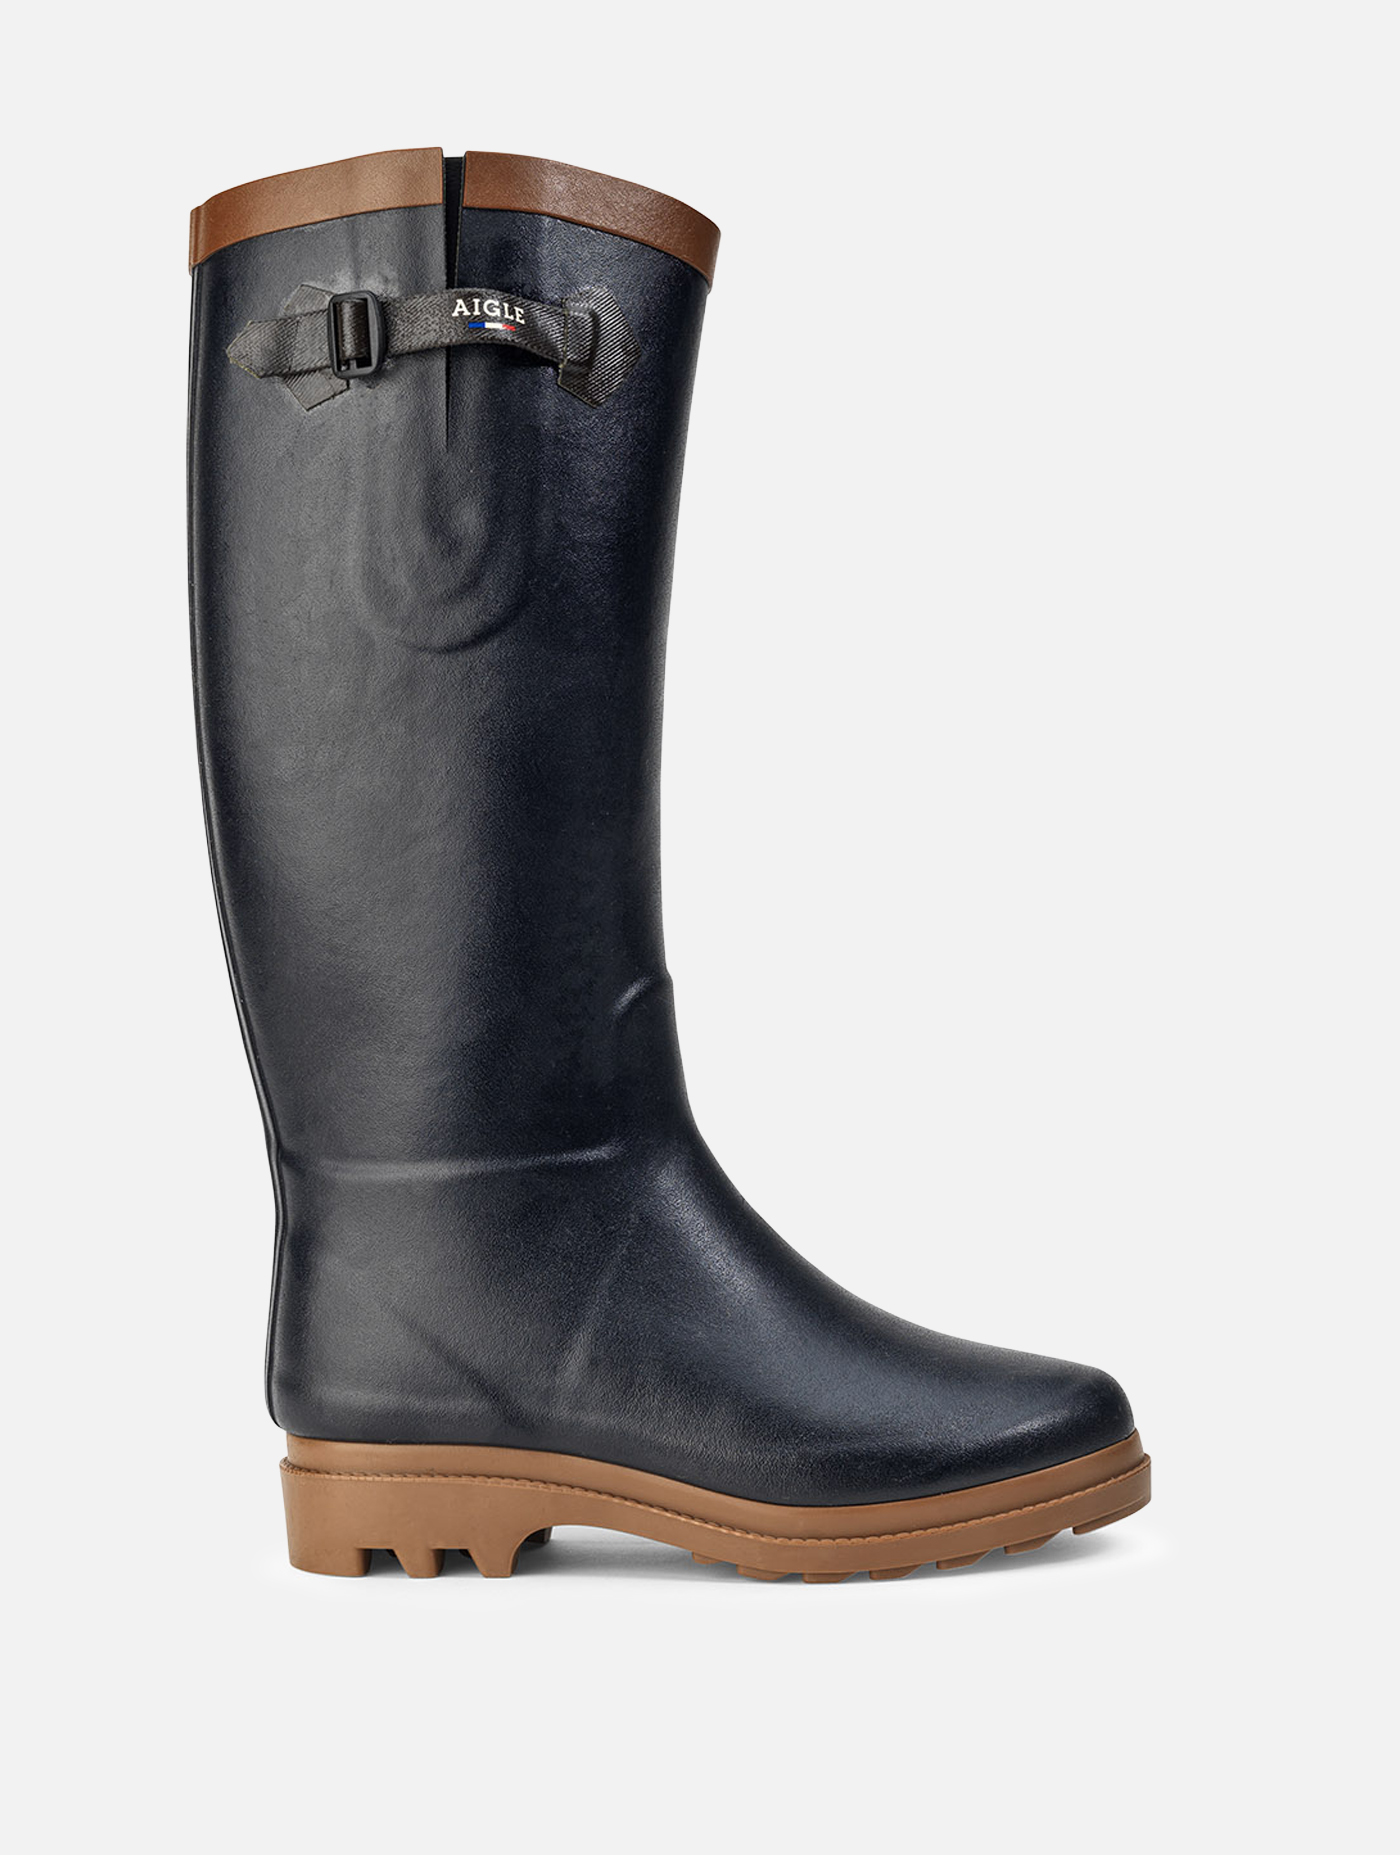 Boots Made In France Aigle